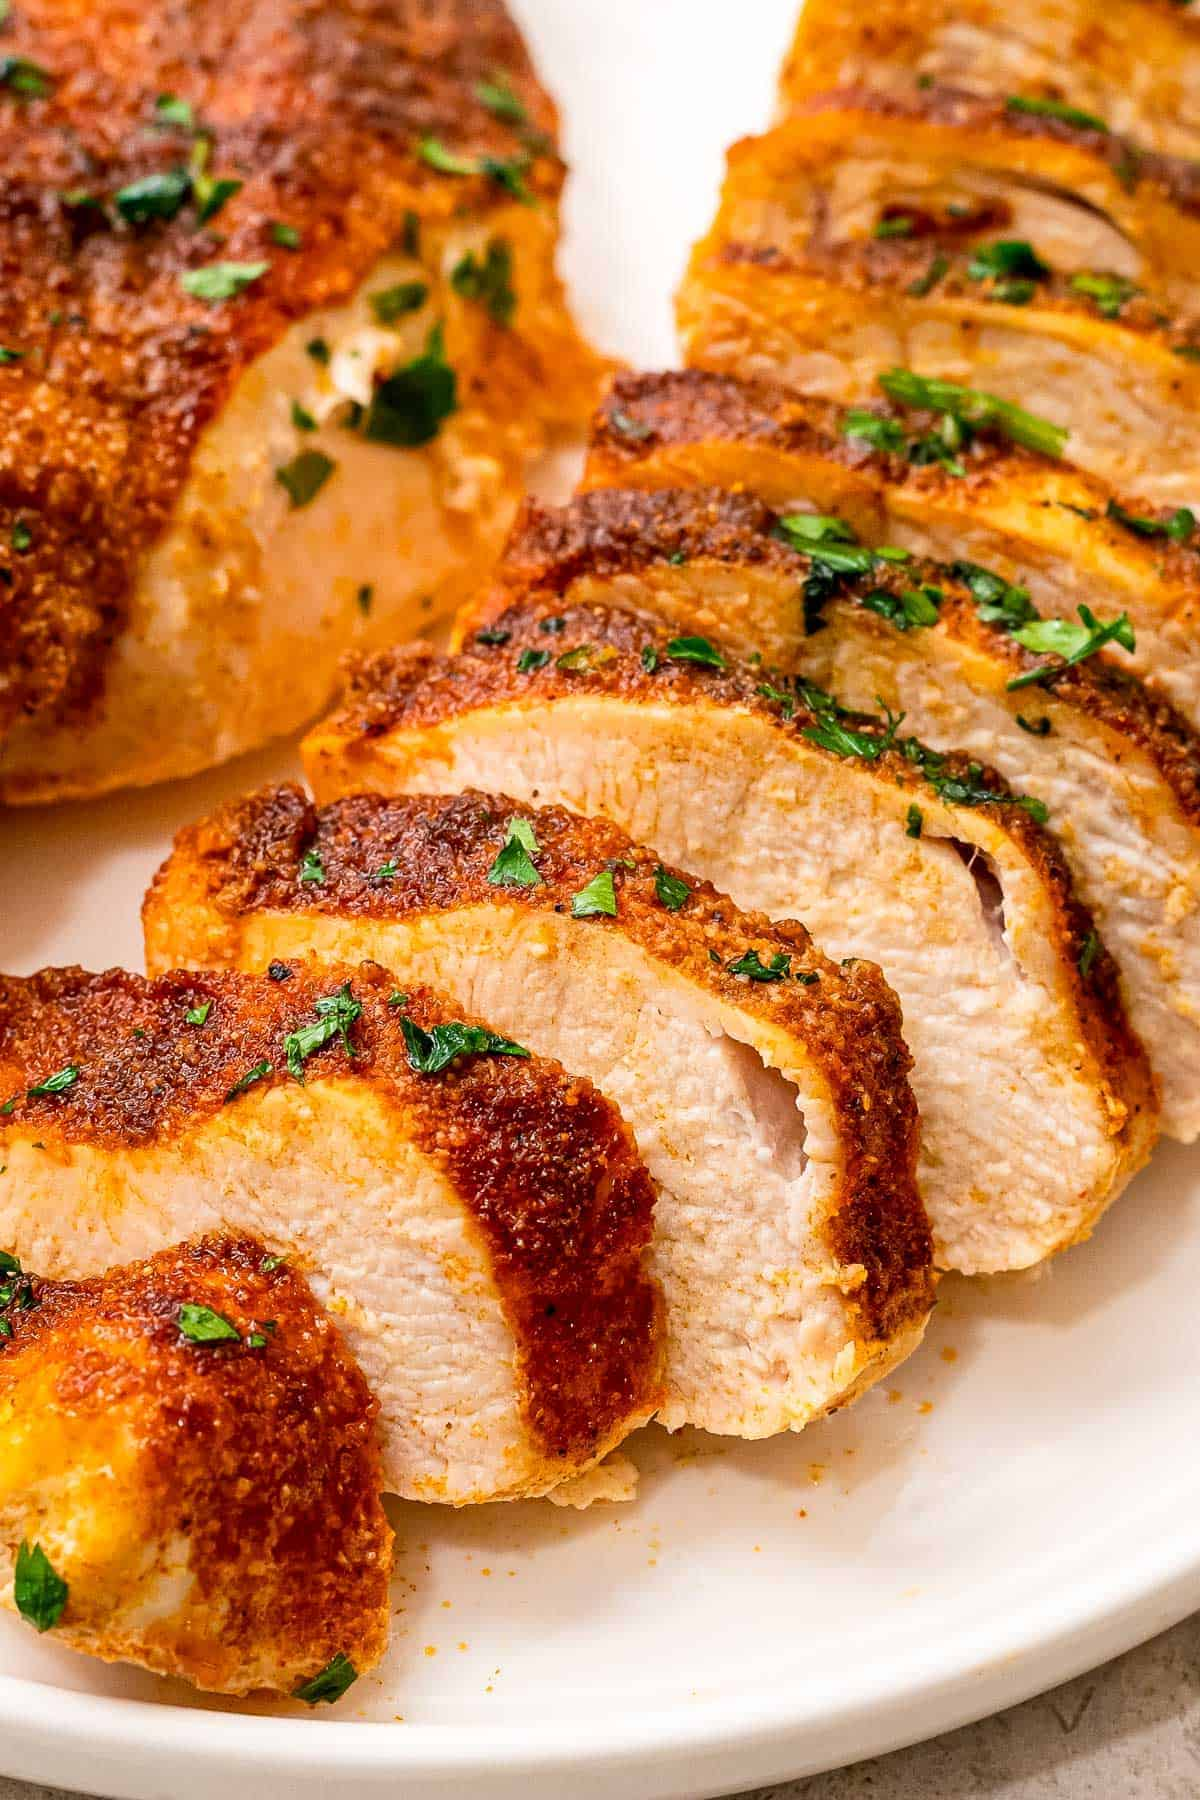 Sliced chicken breasts with seasoning on it